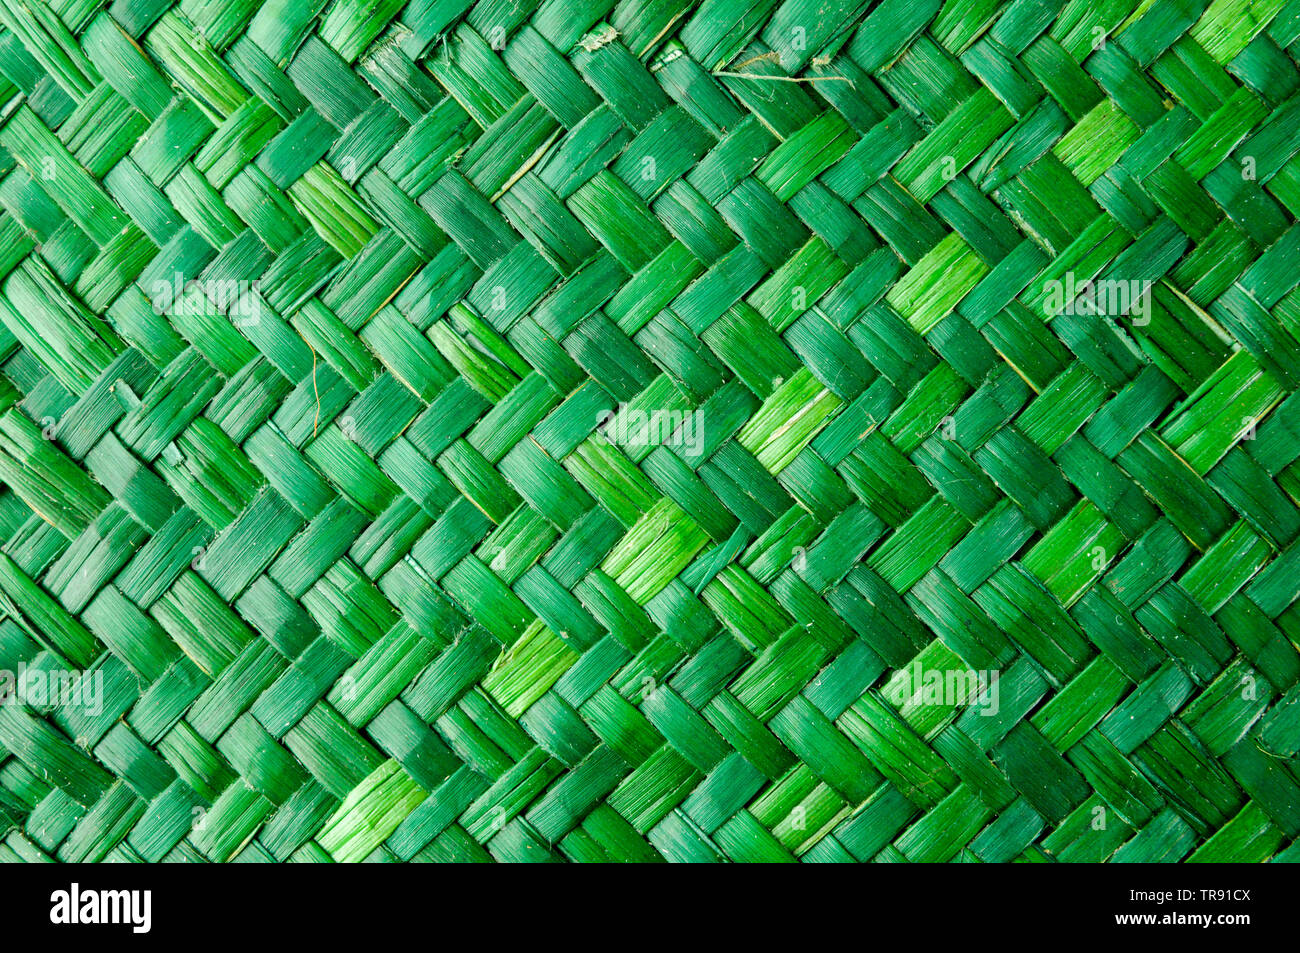 Green Vimini Bamboo weaving texture background pattern - Stock Image